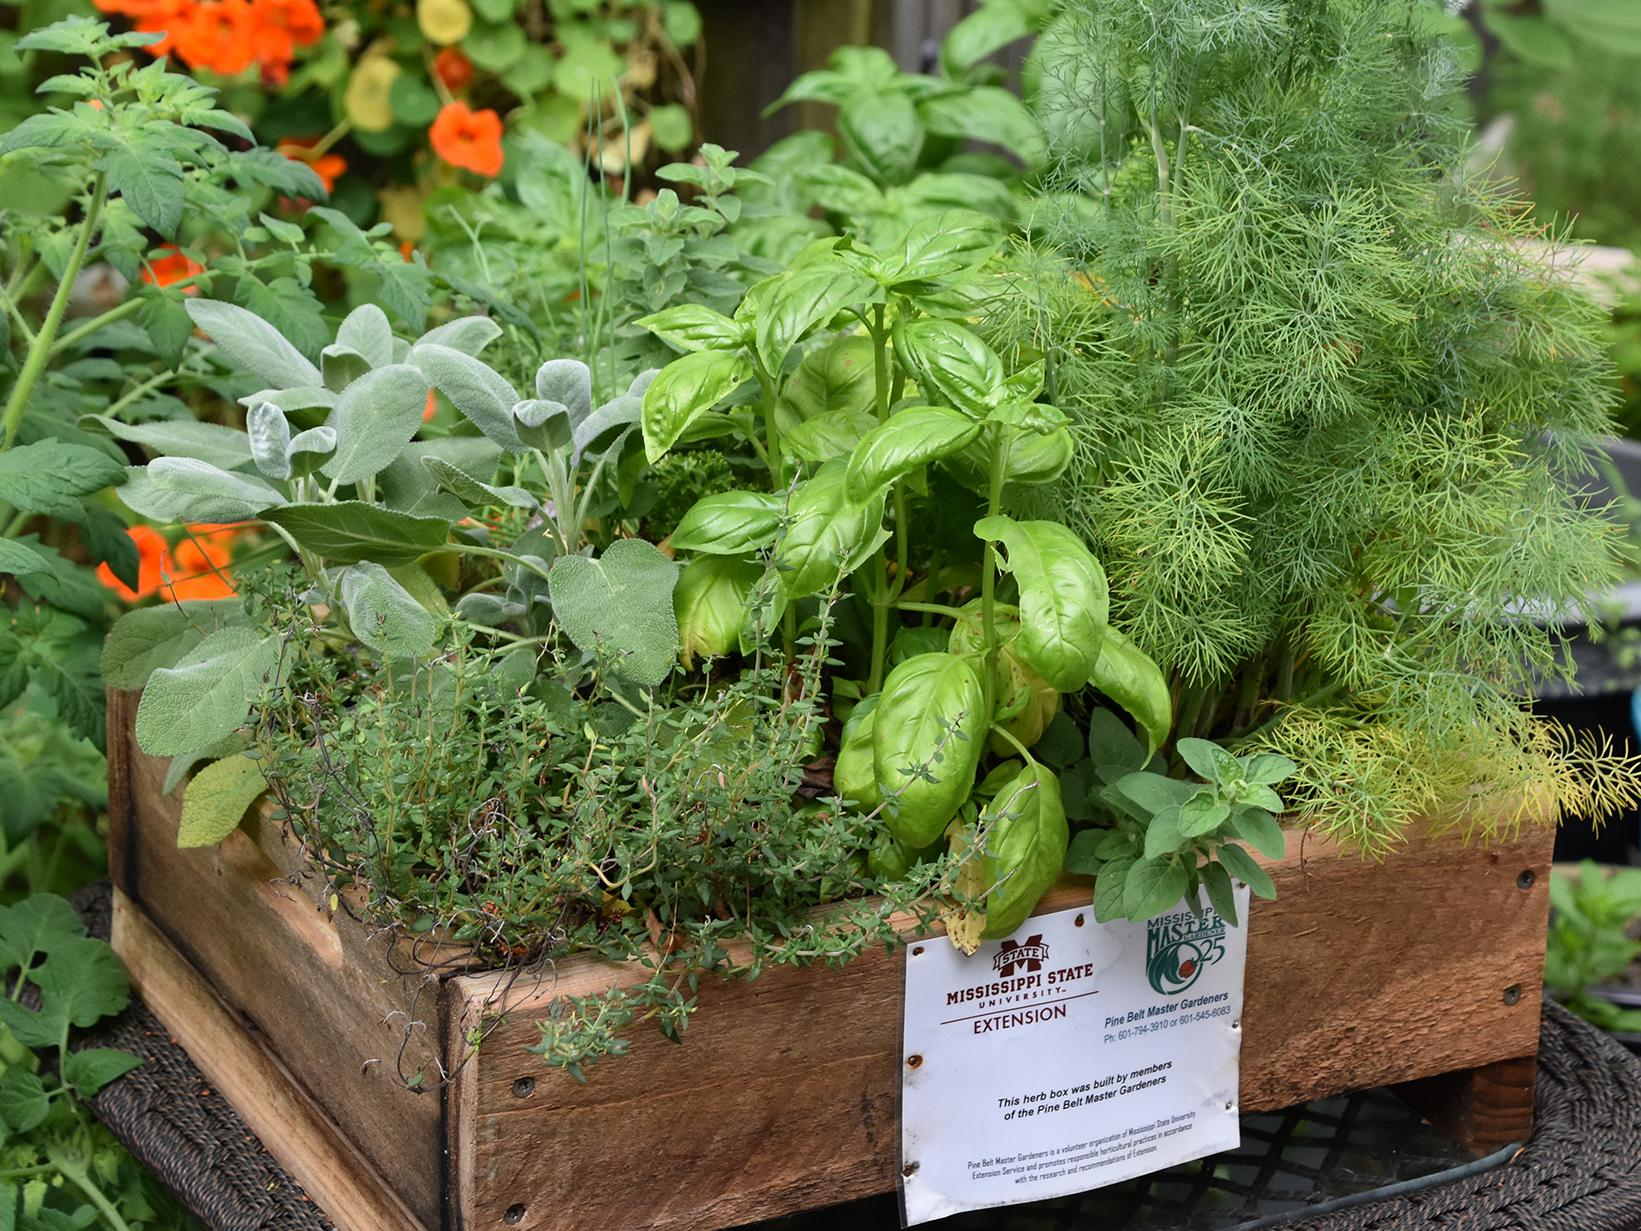 A rough-hewn, low-sided wooden box filled with four different kinds of green plants rests on a small table in front of a variety of other plants in plastic containers.